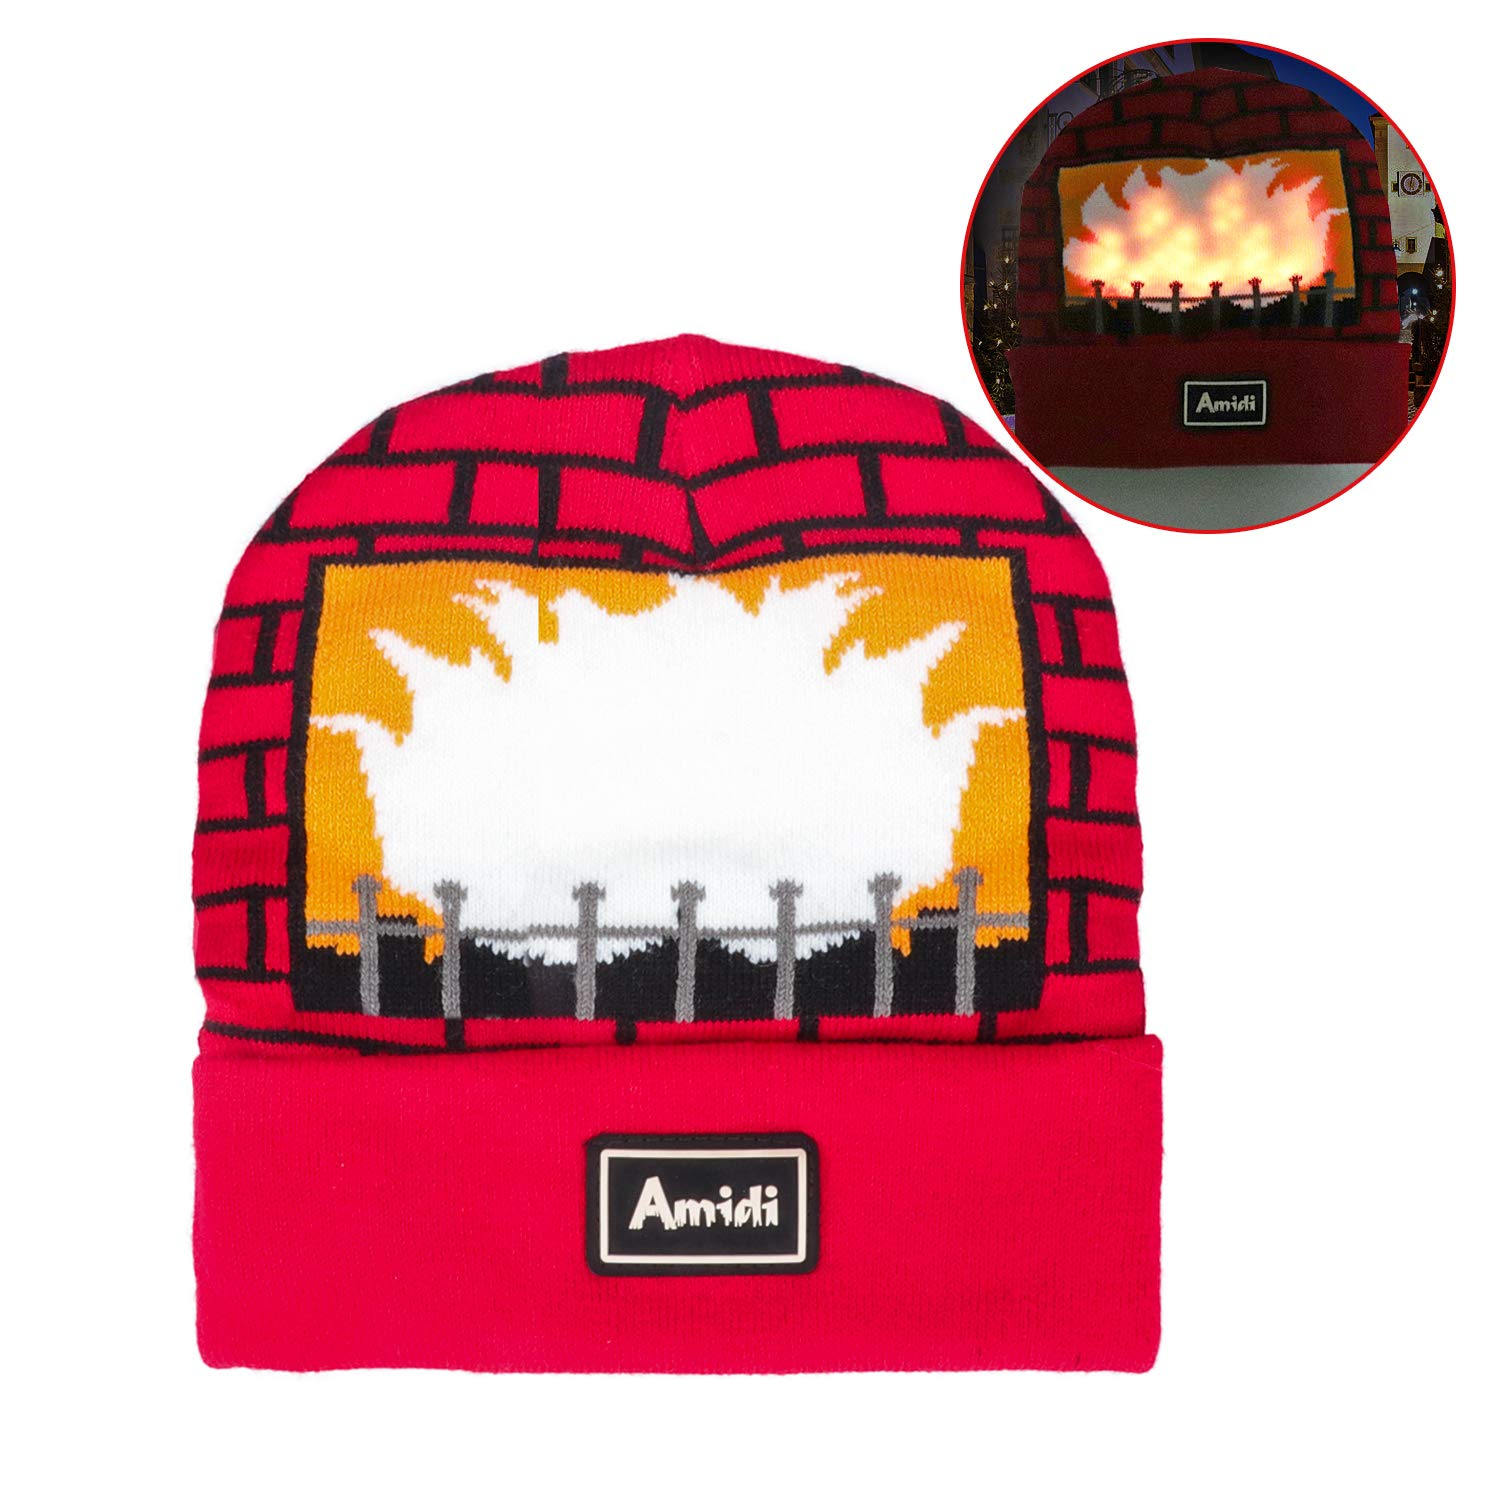 Amazon.com  DX DA XIN Light up Hat Beanie LED Christmas Hat Adults Women  Men Kids Girls Boys Novelty Funny Hat Gifts  Toys   Games 15a312abbed1